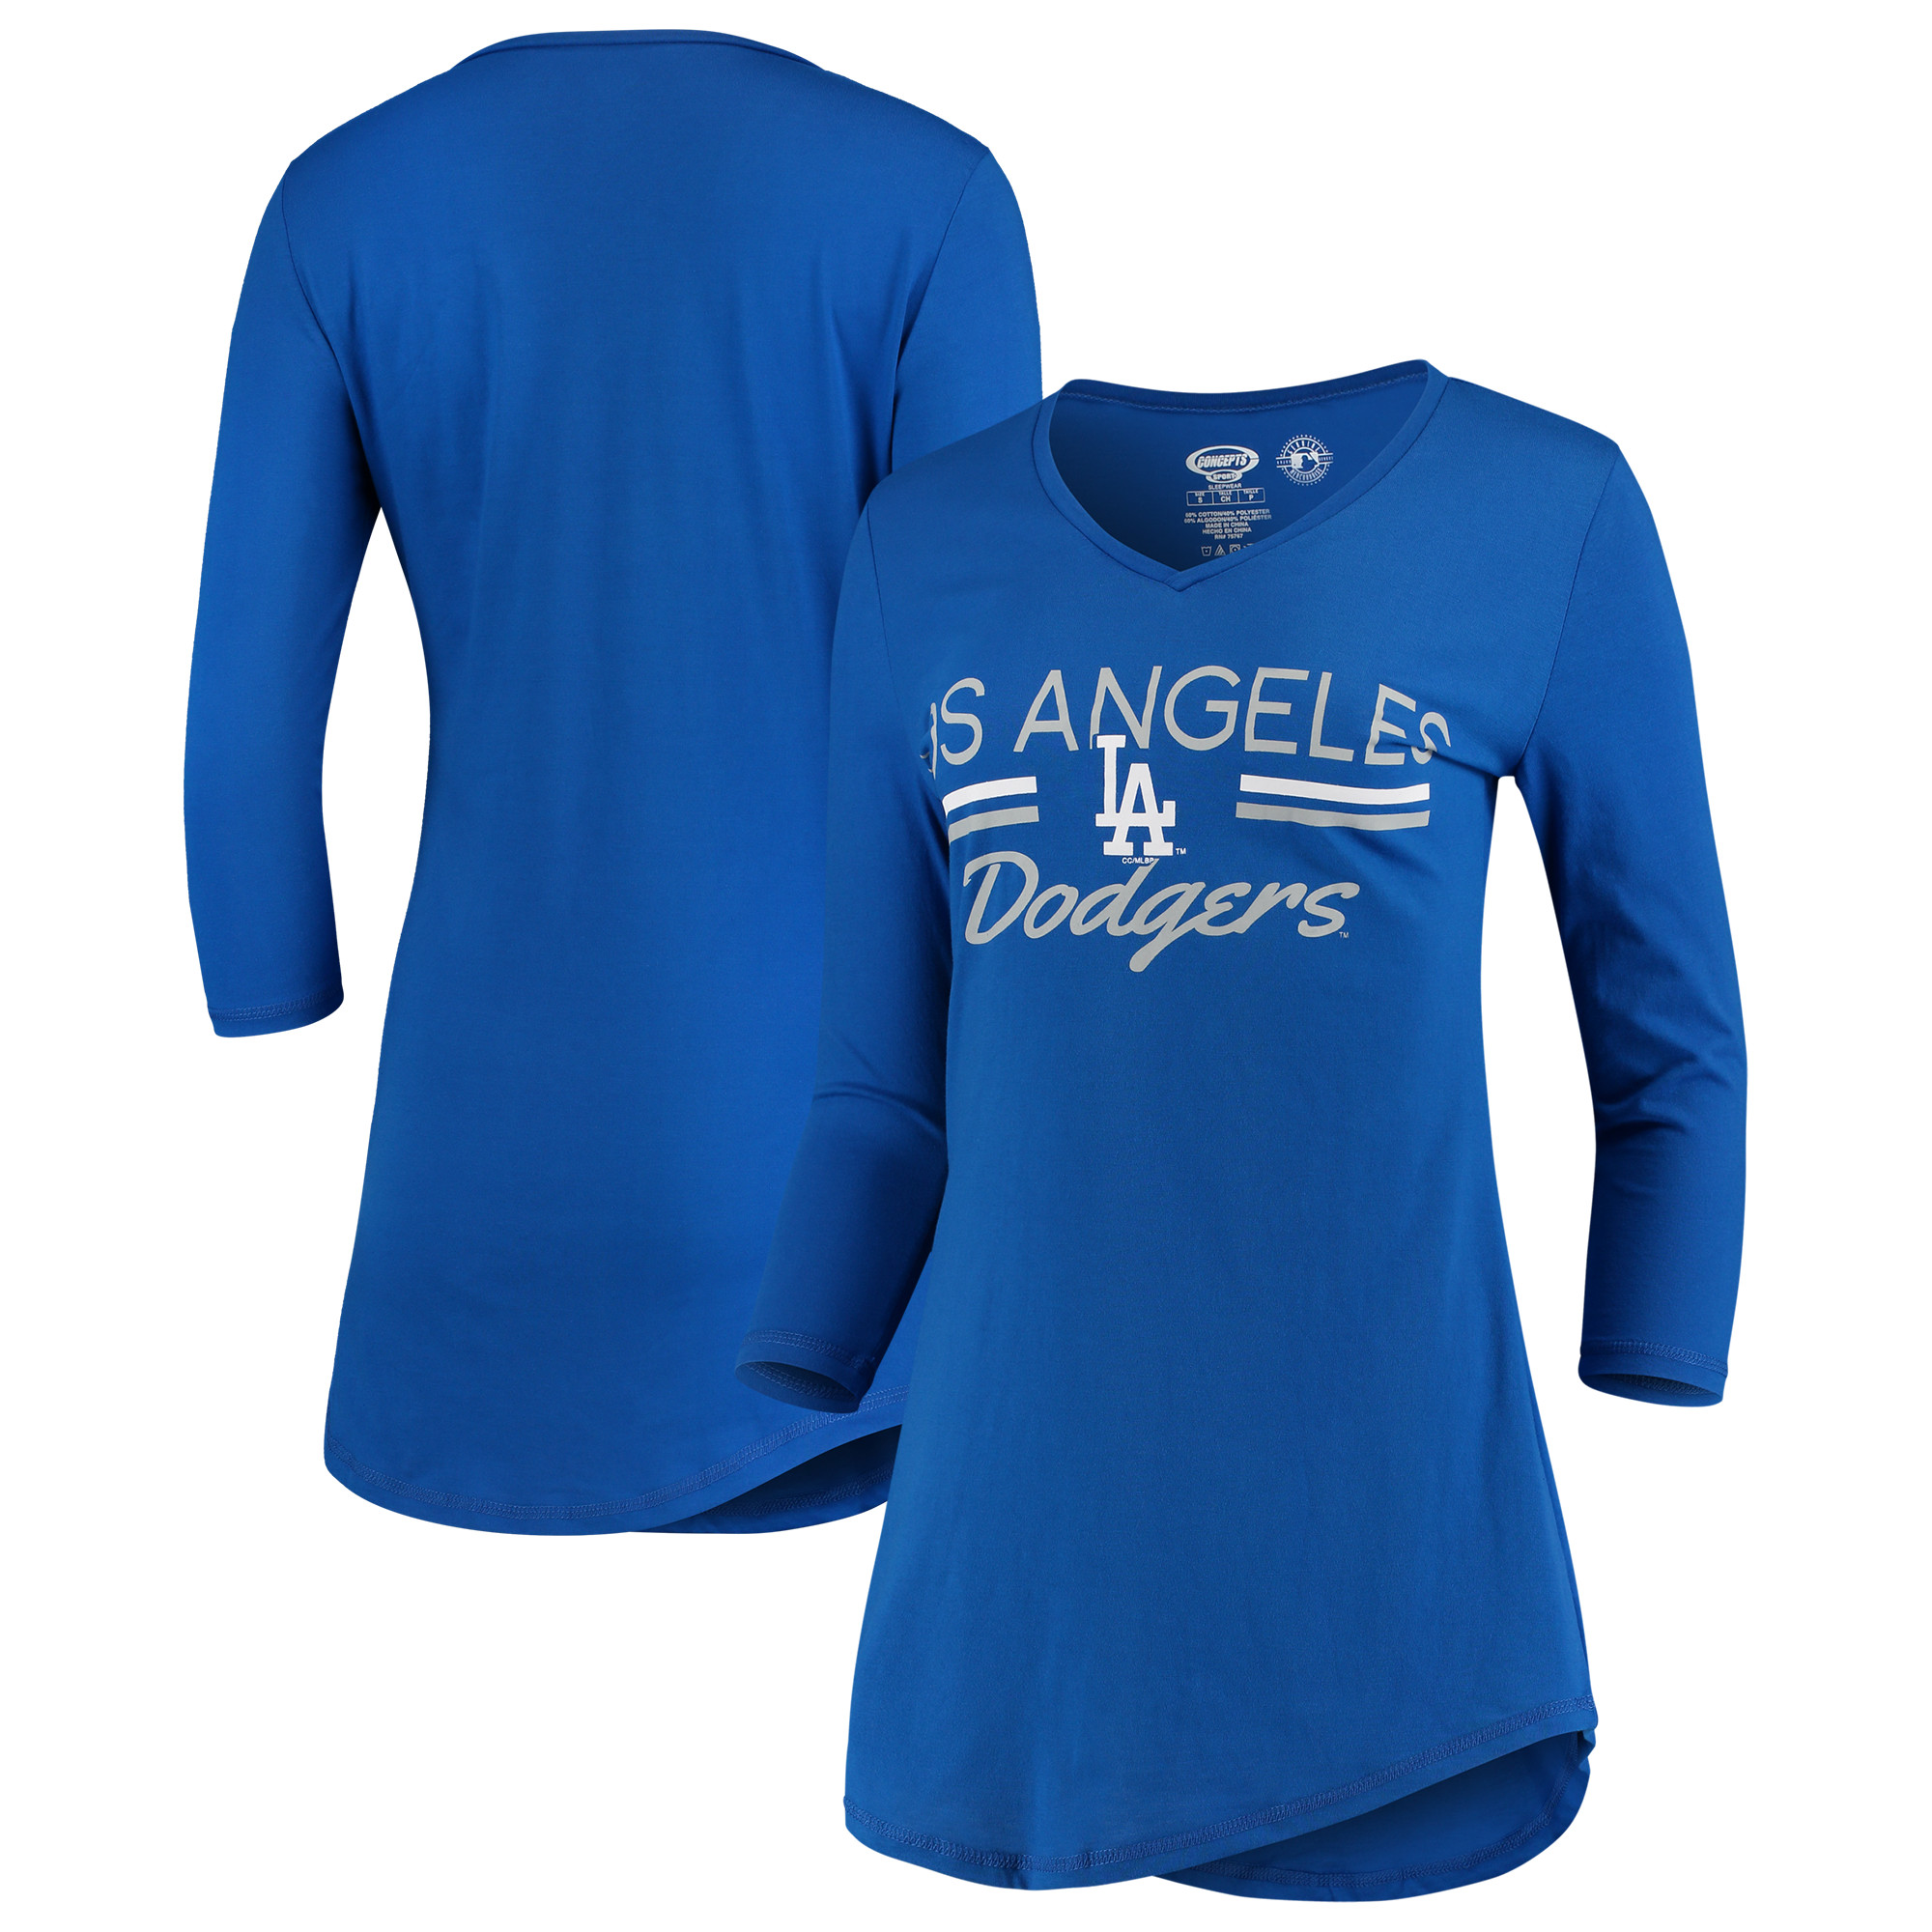 Los Angeles Dodgers Concepts Sport Women's Duo V-Neck Nightshirt - Royal